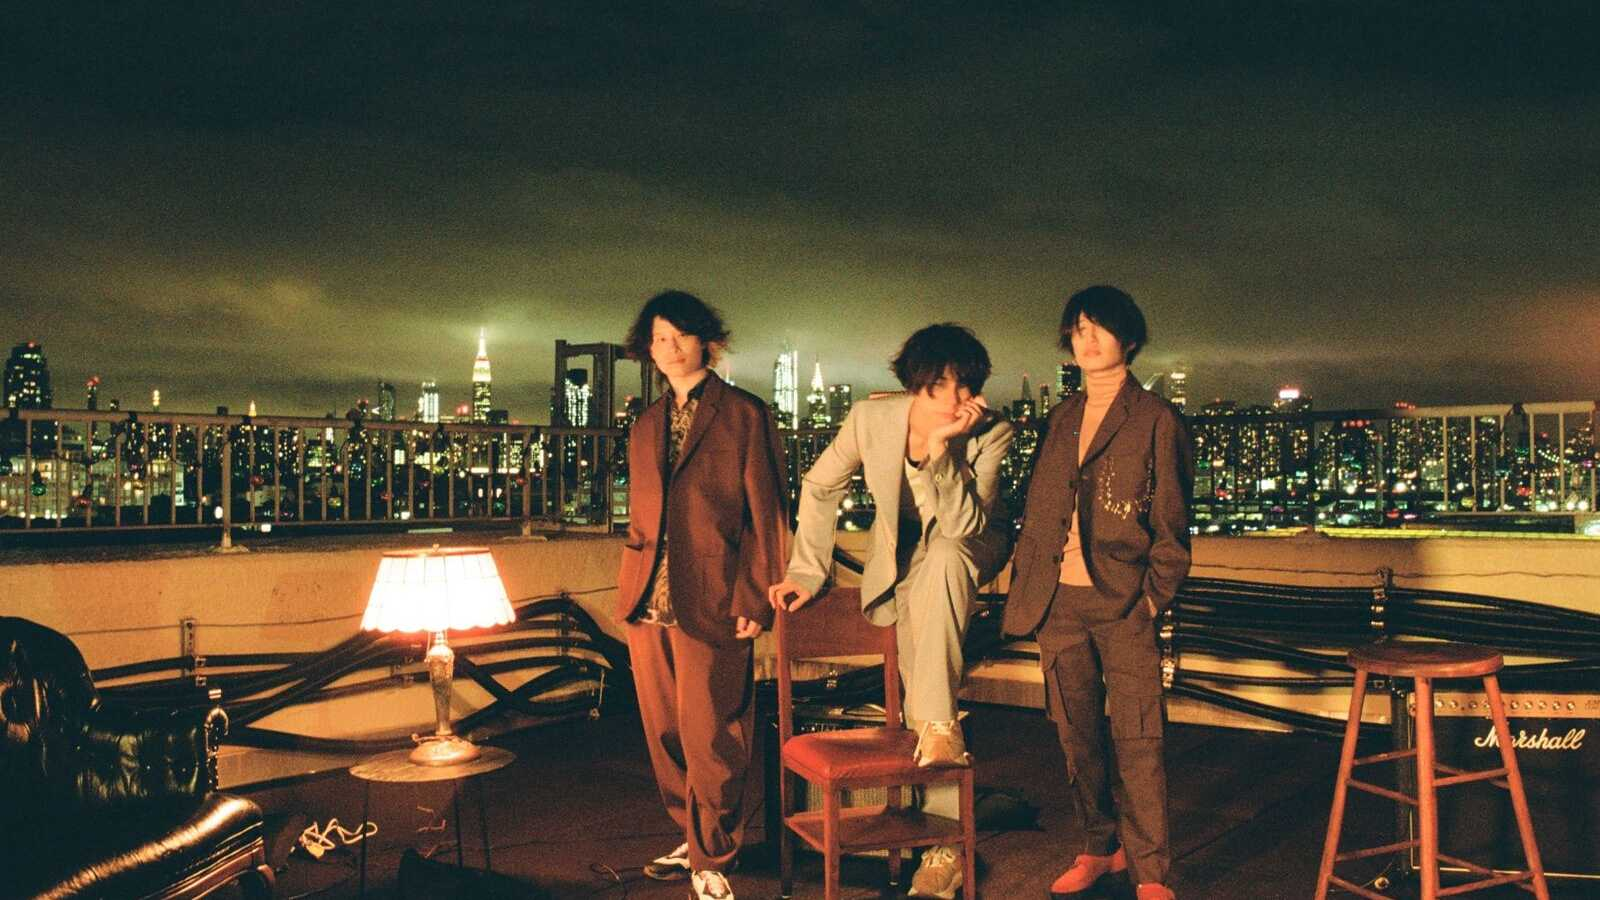 [ALEXANDROS] © [ALEXANDROS]. All rights reserved.